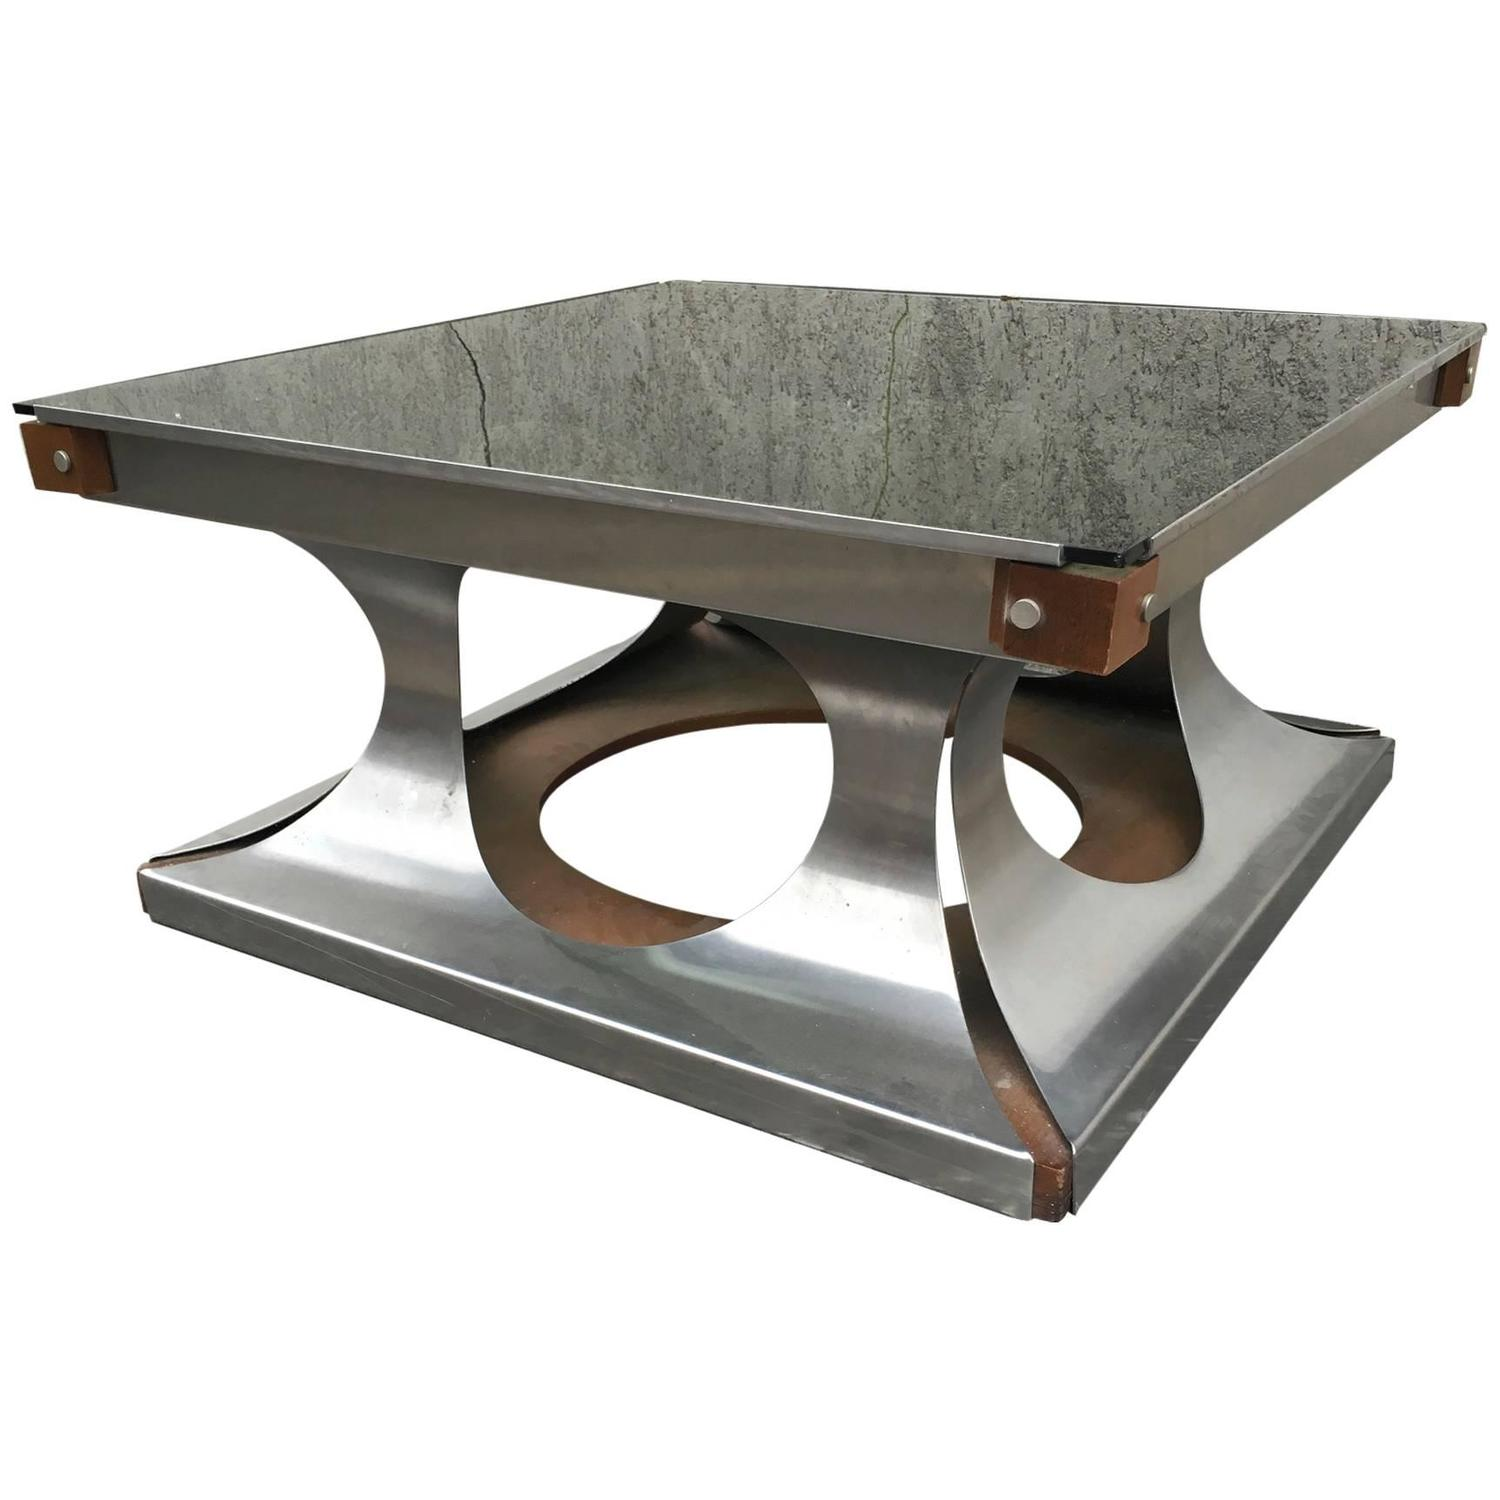 Maison Jansen 1970s Brushed Steel And Wood Square Coffee Table At 1stdibs